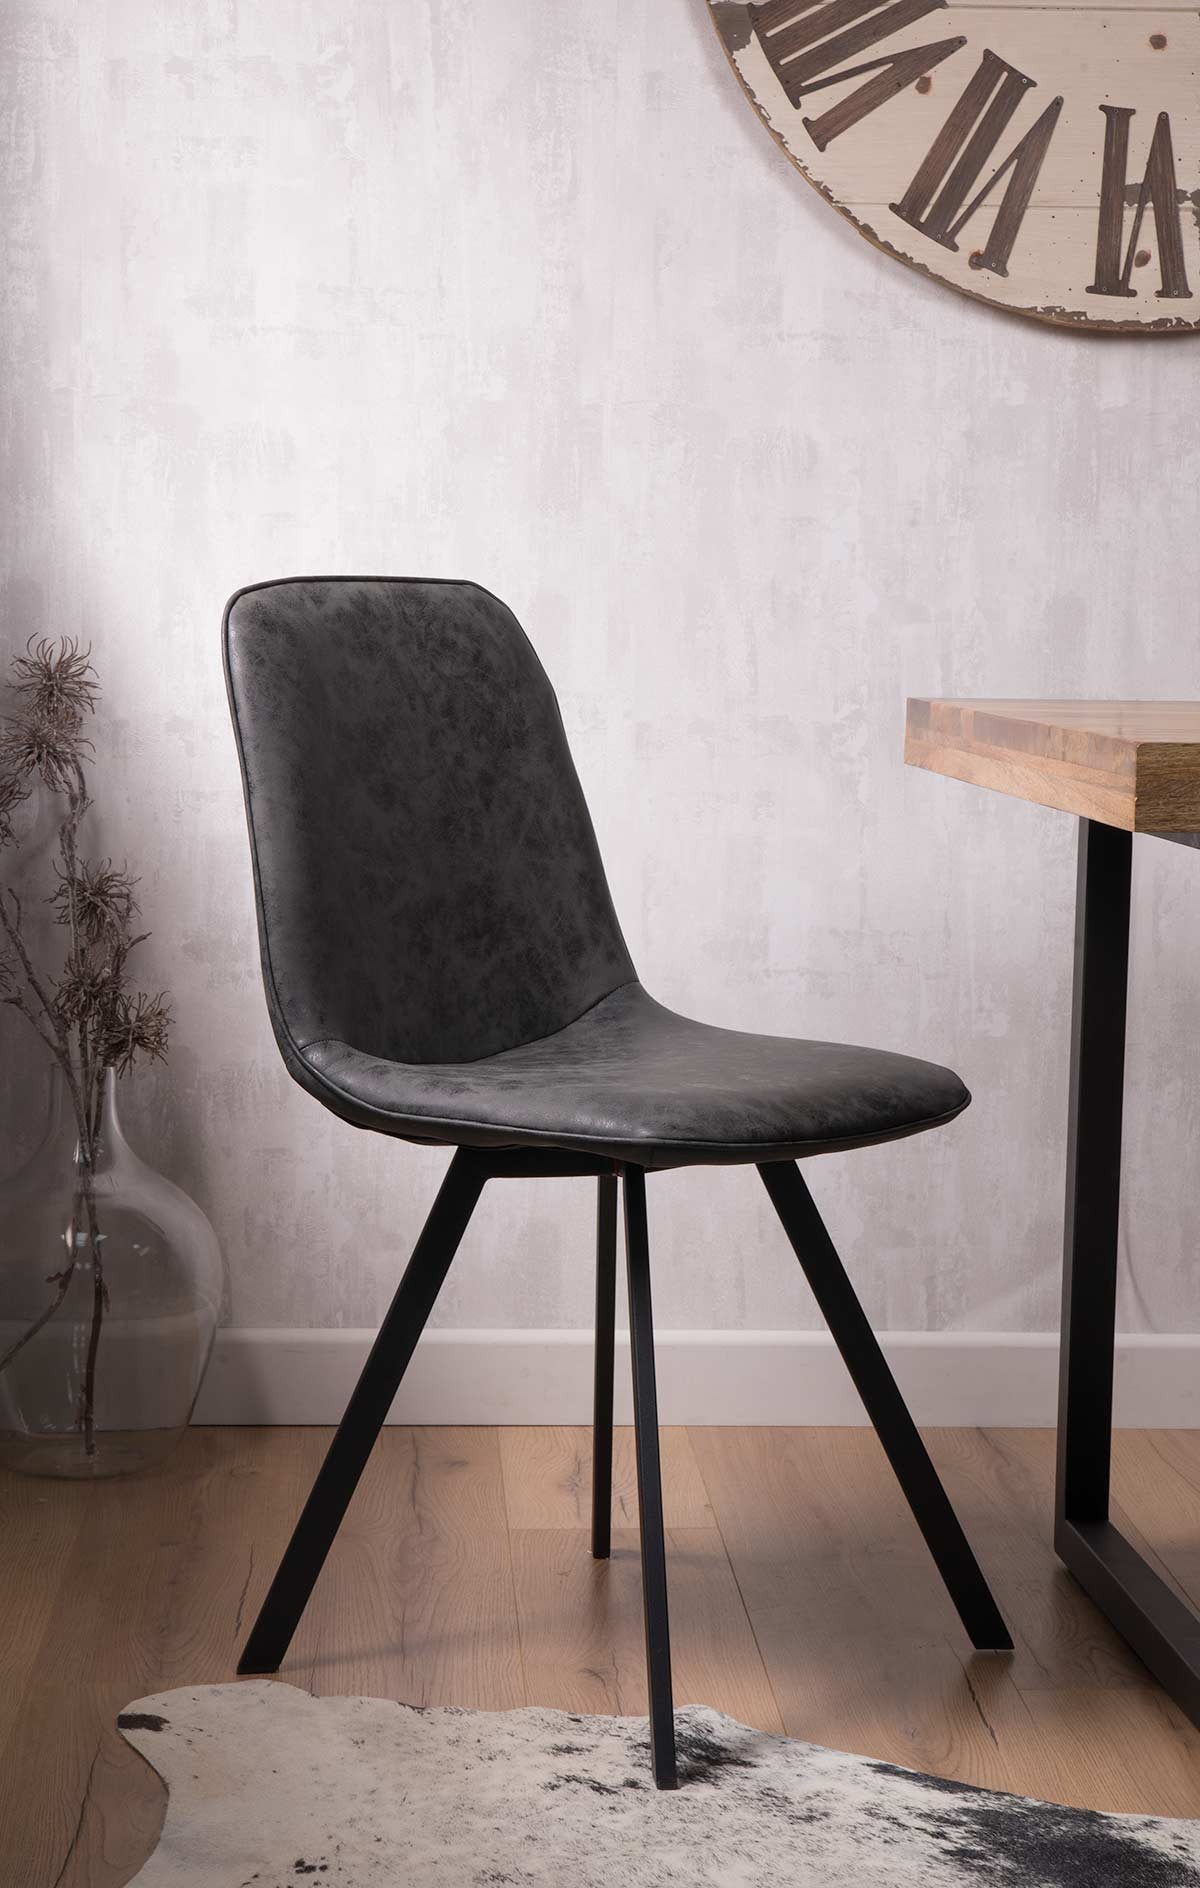 Pleasing Arizona Leather Dining Chair Charcoal Grey Gamerscity Chair Design For Home Gamerscityorg